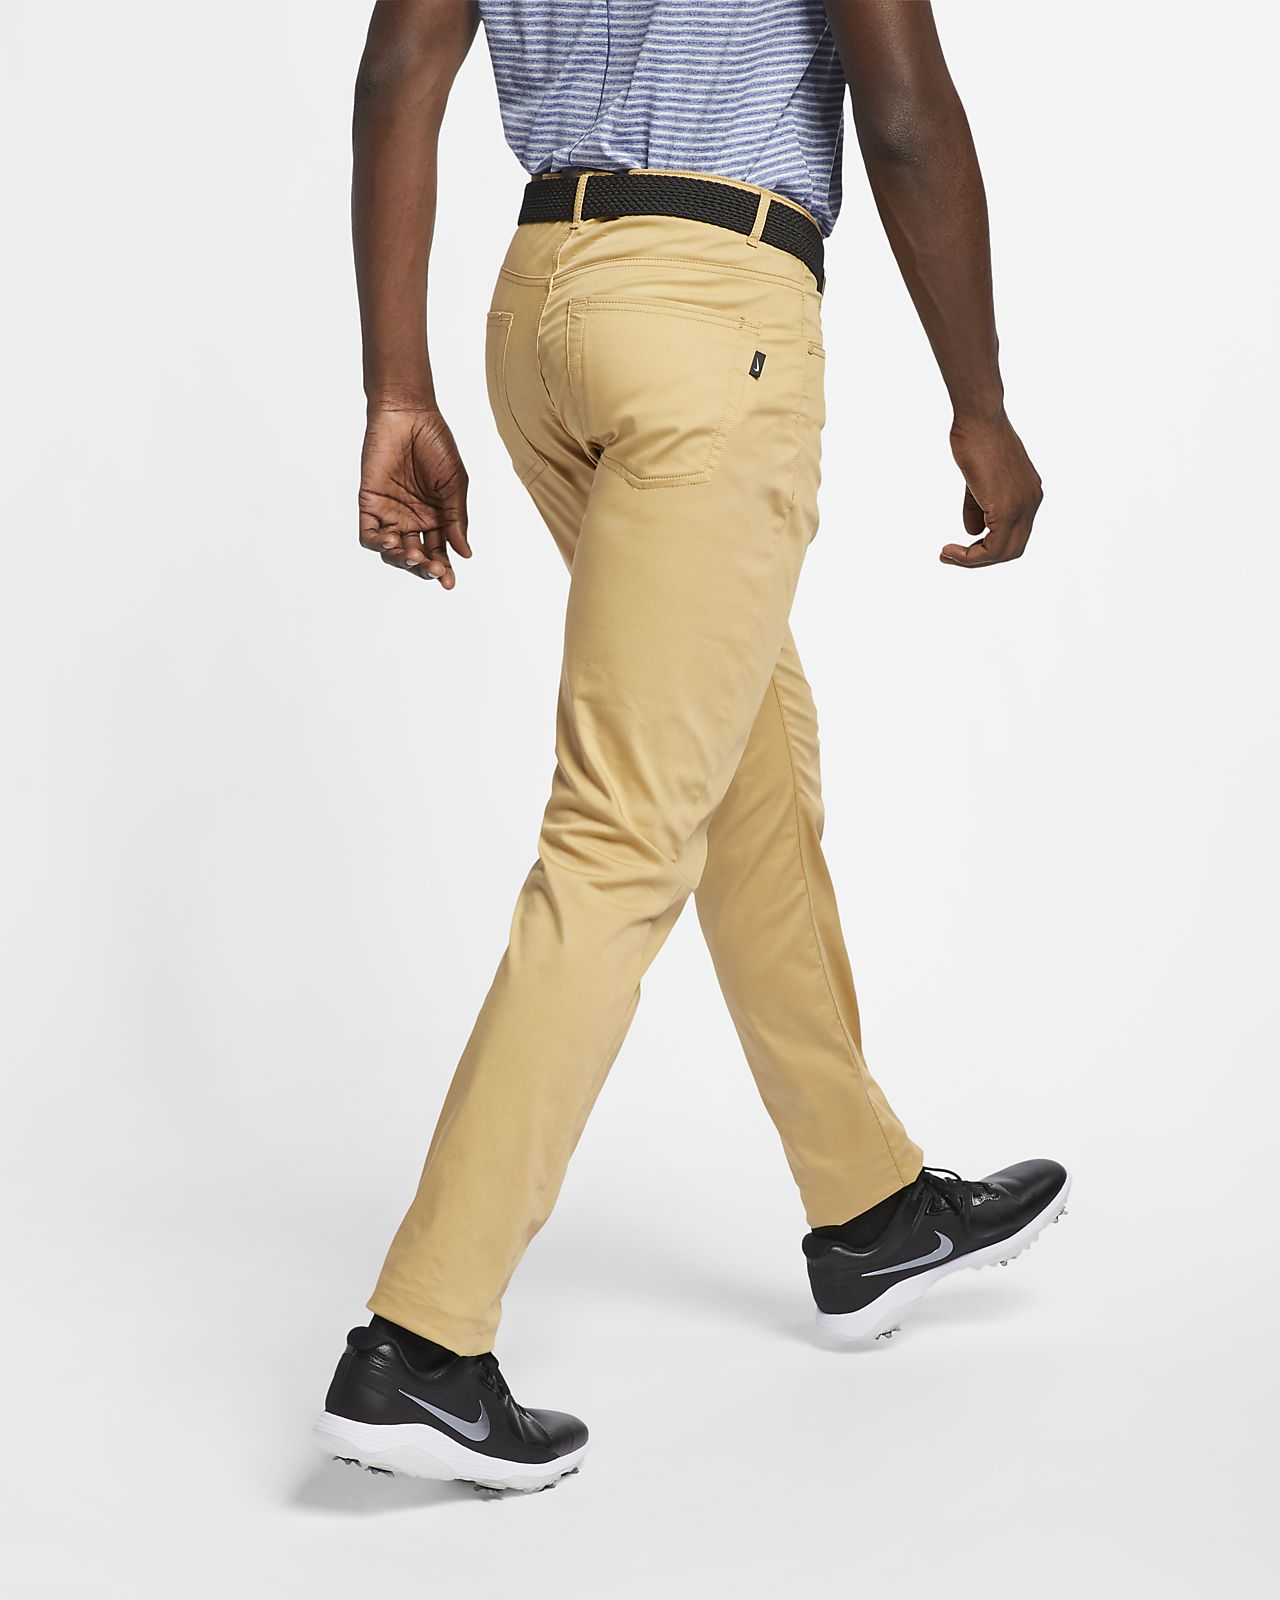 f676d9fa424be Nike Flex Men s Slim-Fit 5-Pocket Golf Trousers. Nike.com LU